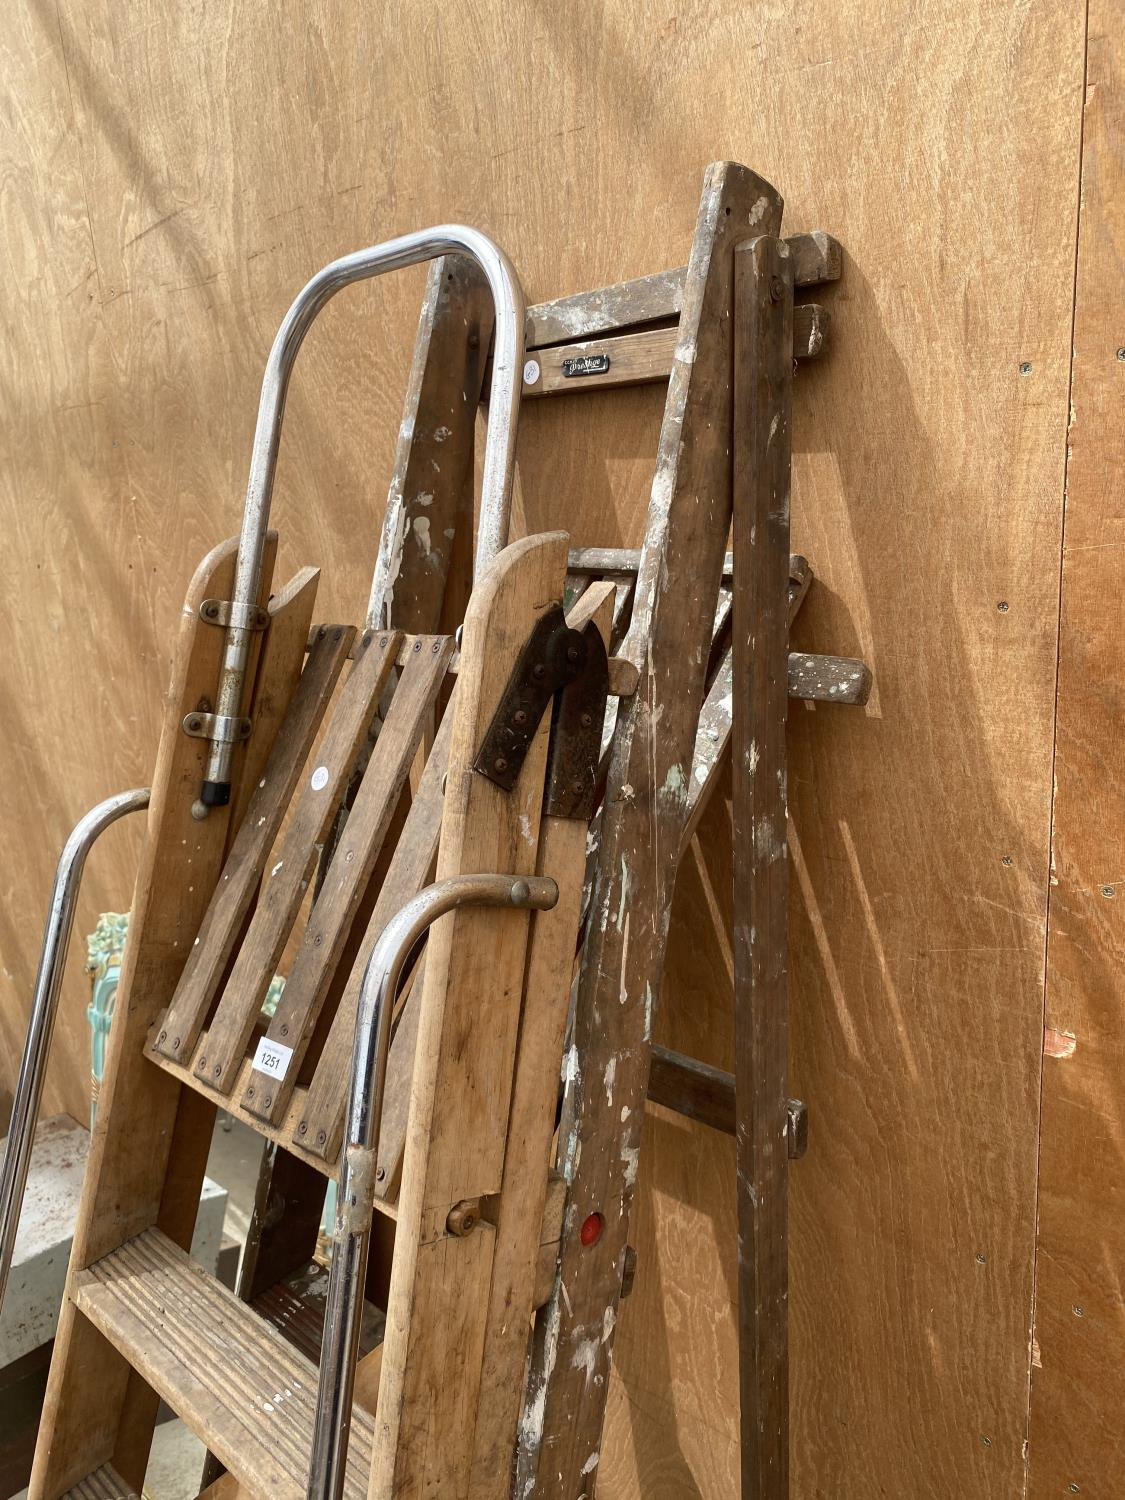 A VINTAGE 6 RUNG WOODEN STEP LADDER AND A VINTAGE 5 RUNG WOODEN STEP LADDER - Image 2 of 4